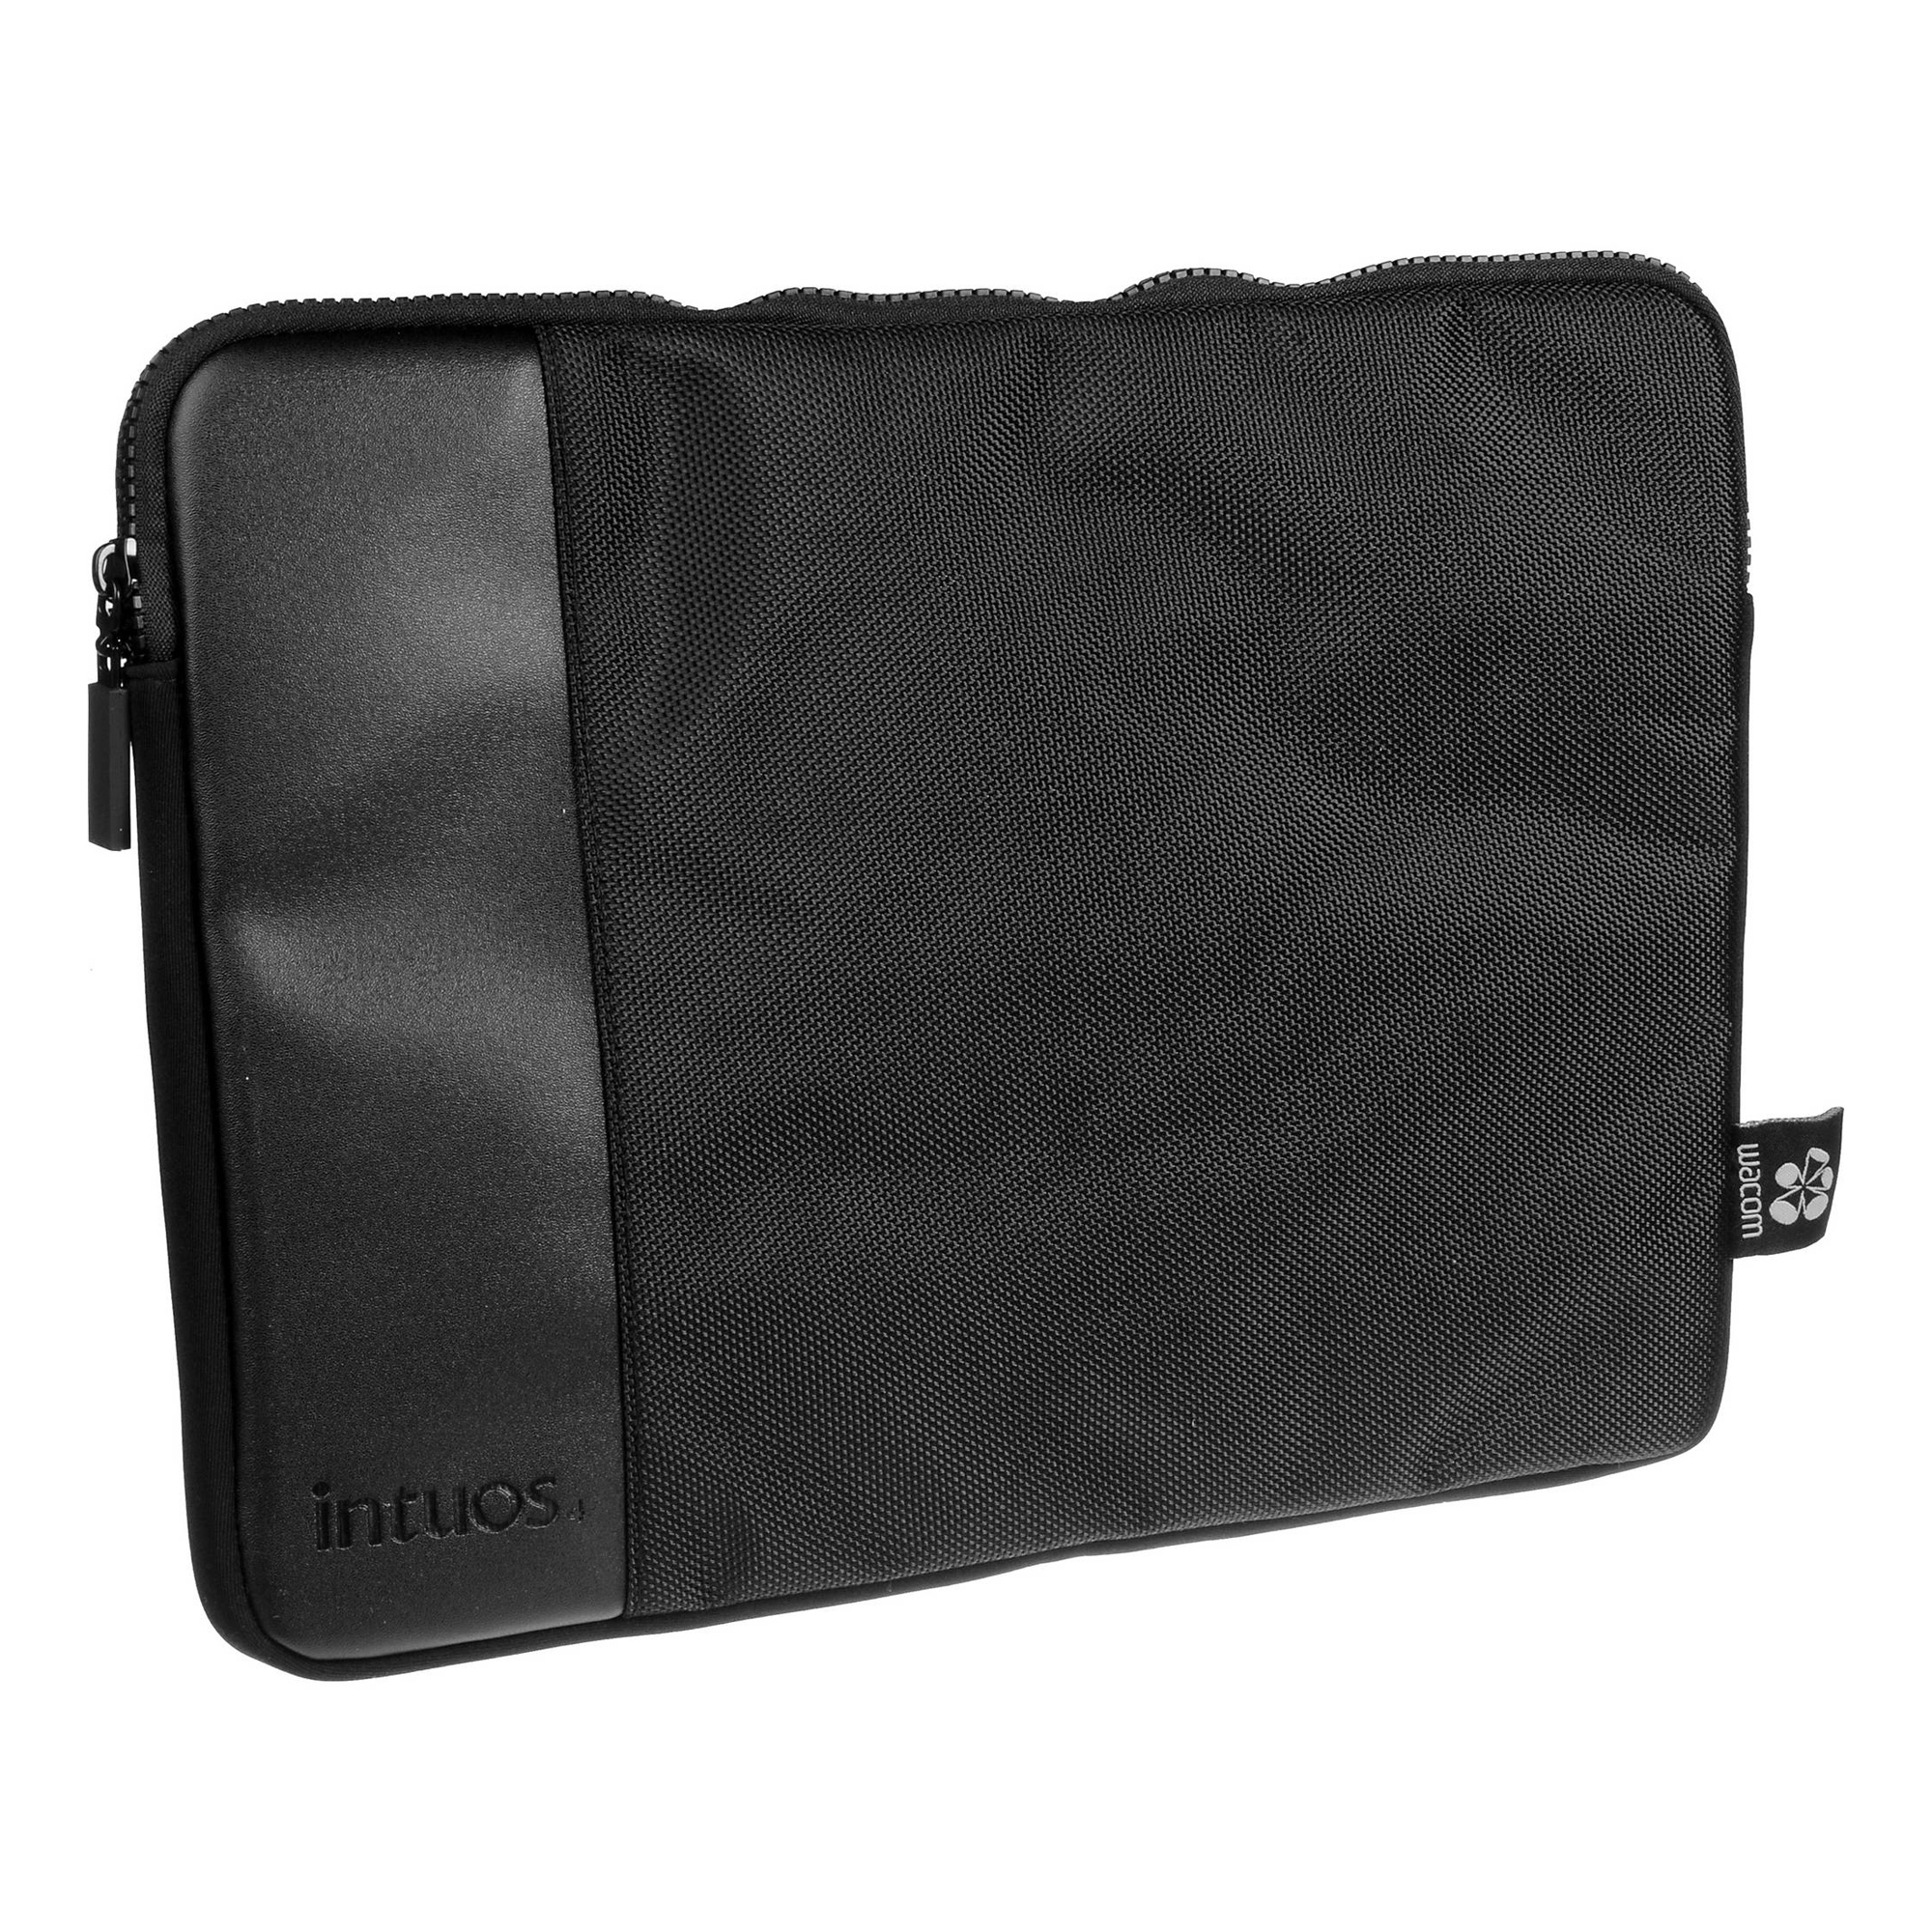 Small Soft Case For Intuos4 Small Digital Tablet